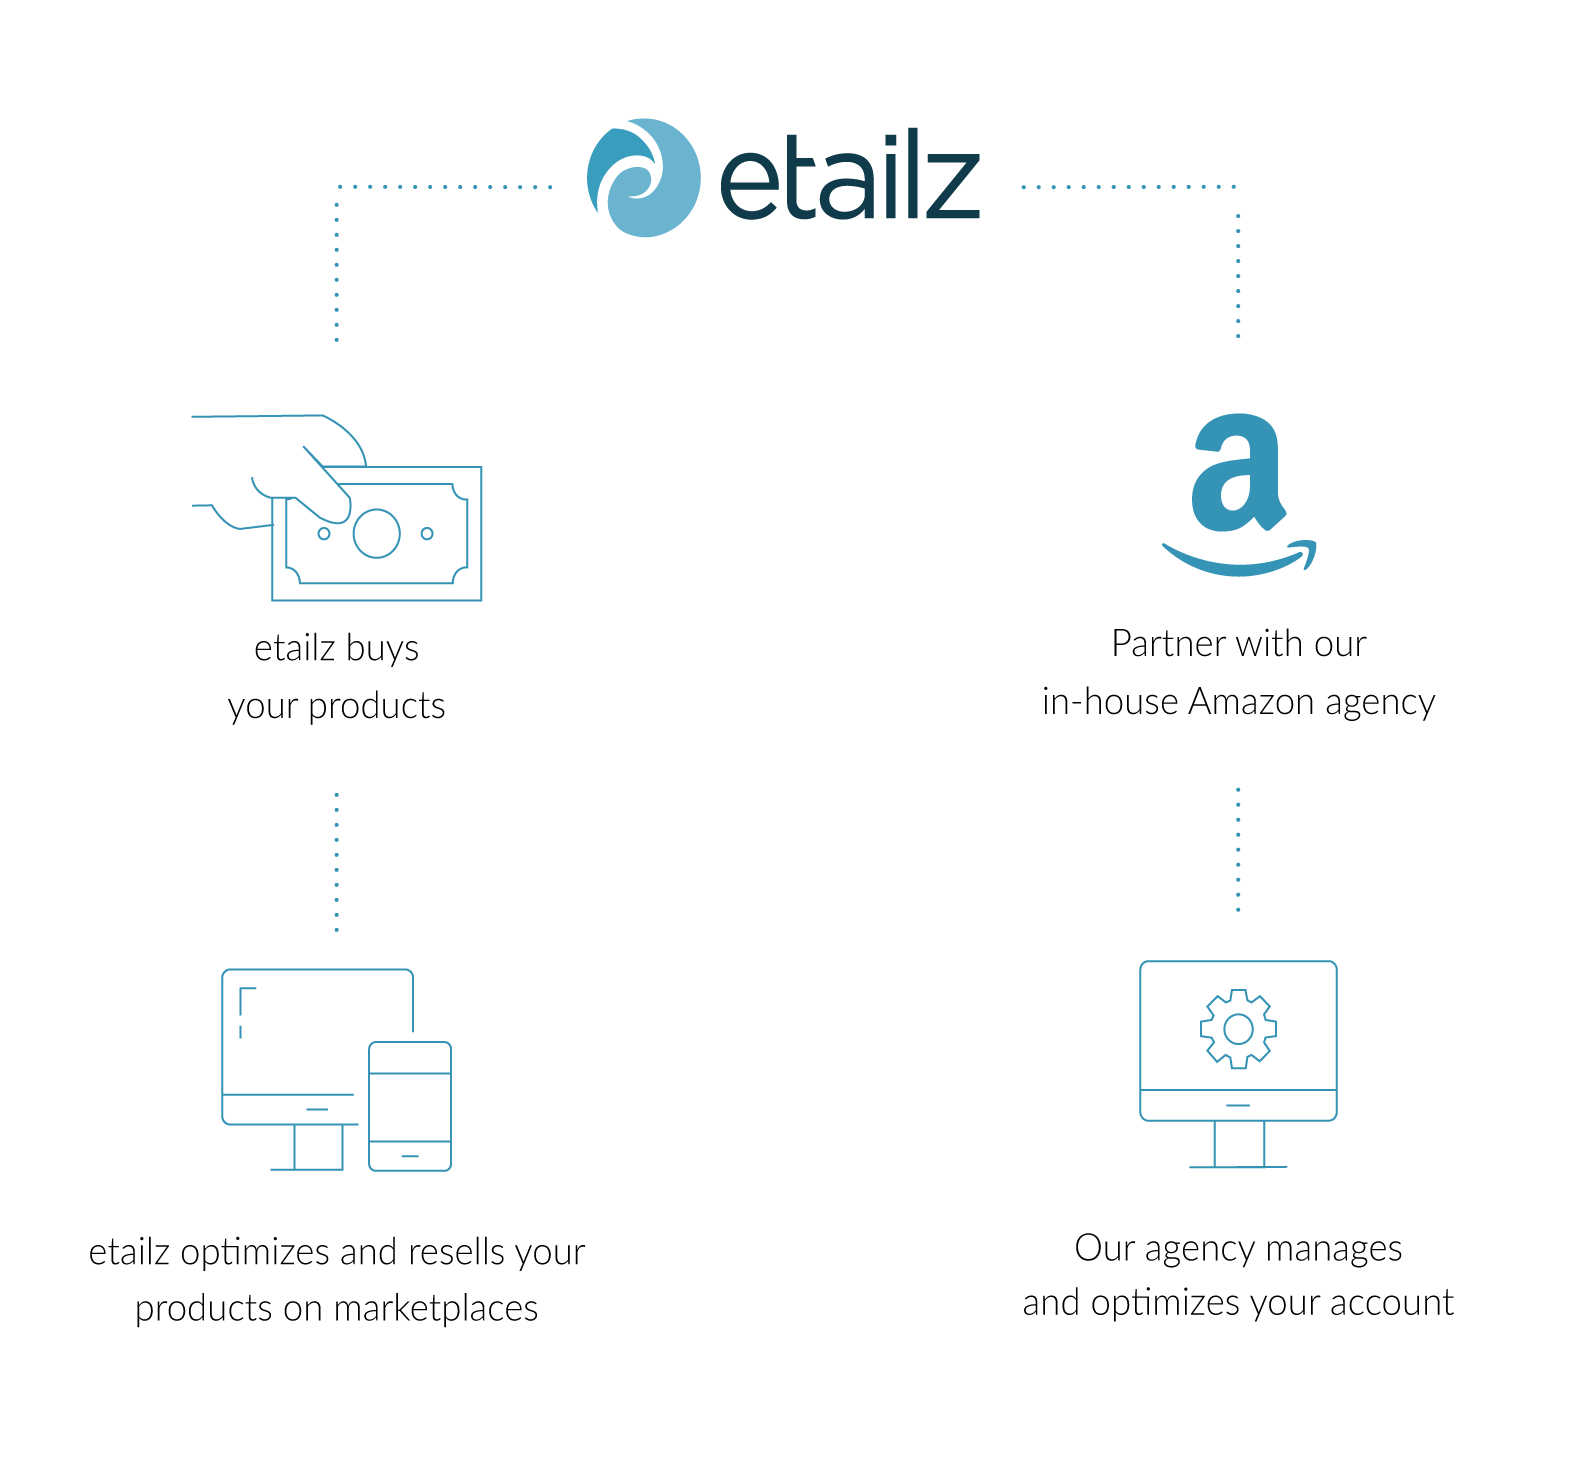 graph showing two paths to etailz partnership